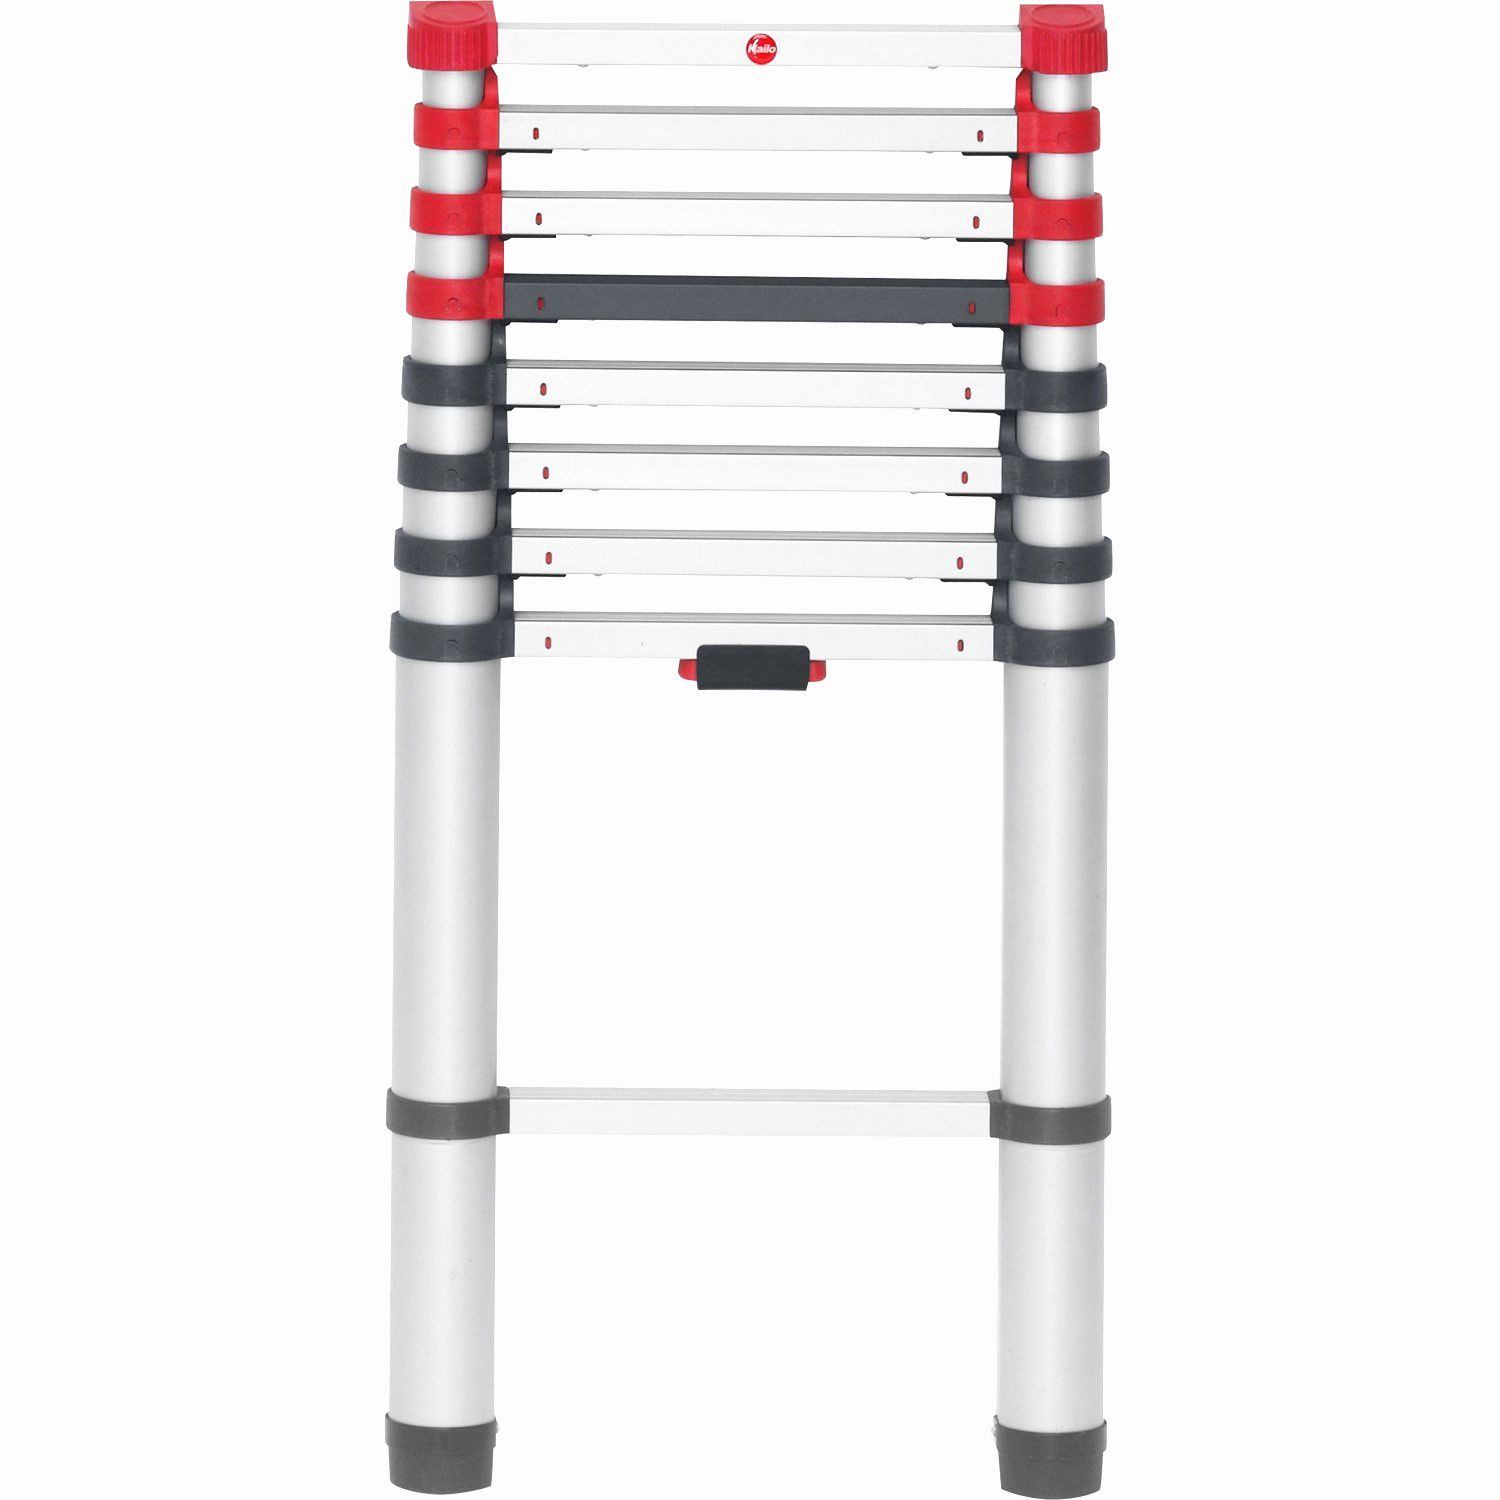 Lovely Echelle Telescopique Mr Bricolage Telescopic Ladder Ladder Aluminum